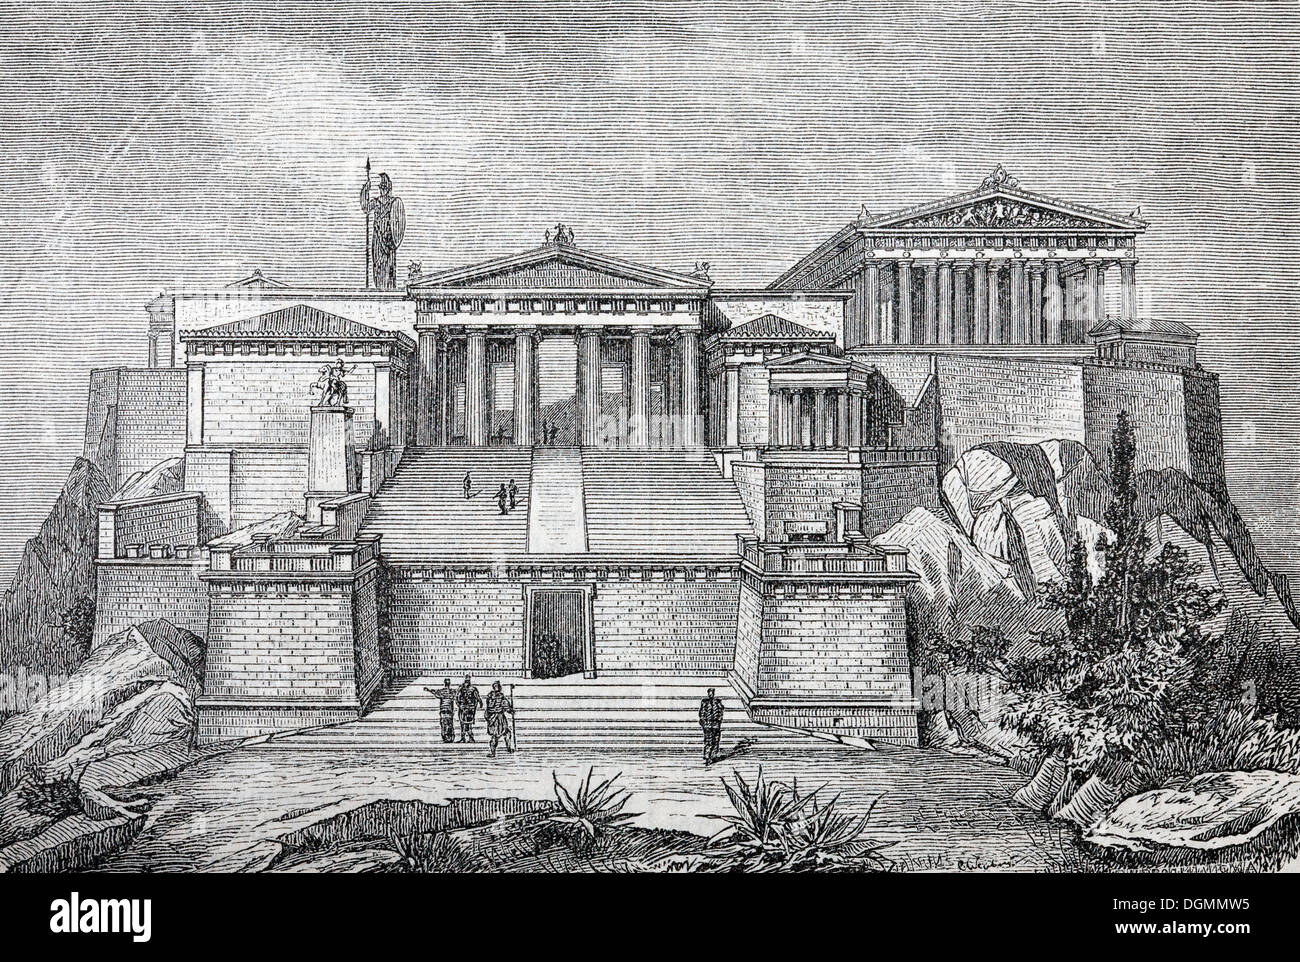 Acropolis, reconstruction from the 19th Century, historical book illustration, steel engraving, Brockhaus Encyclopedia Stock Photo